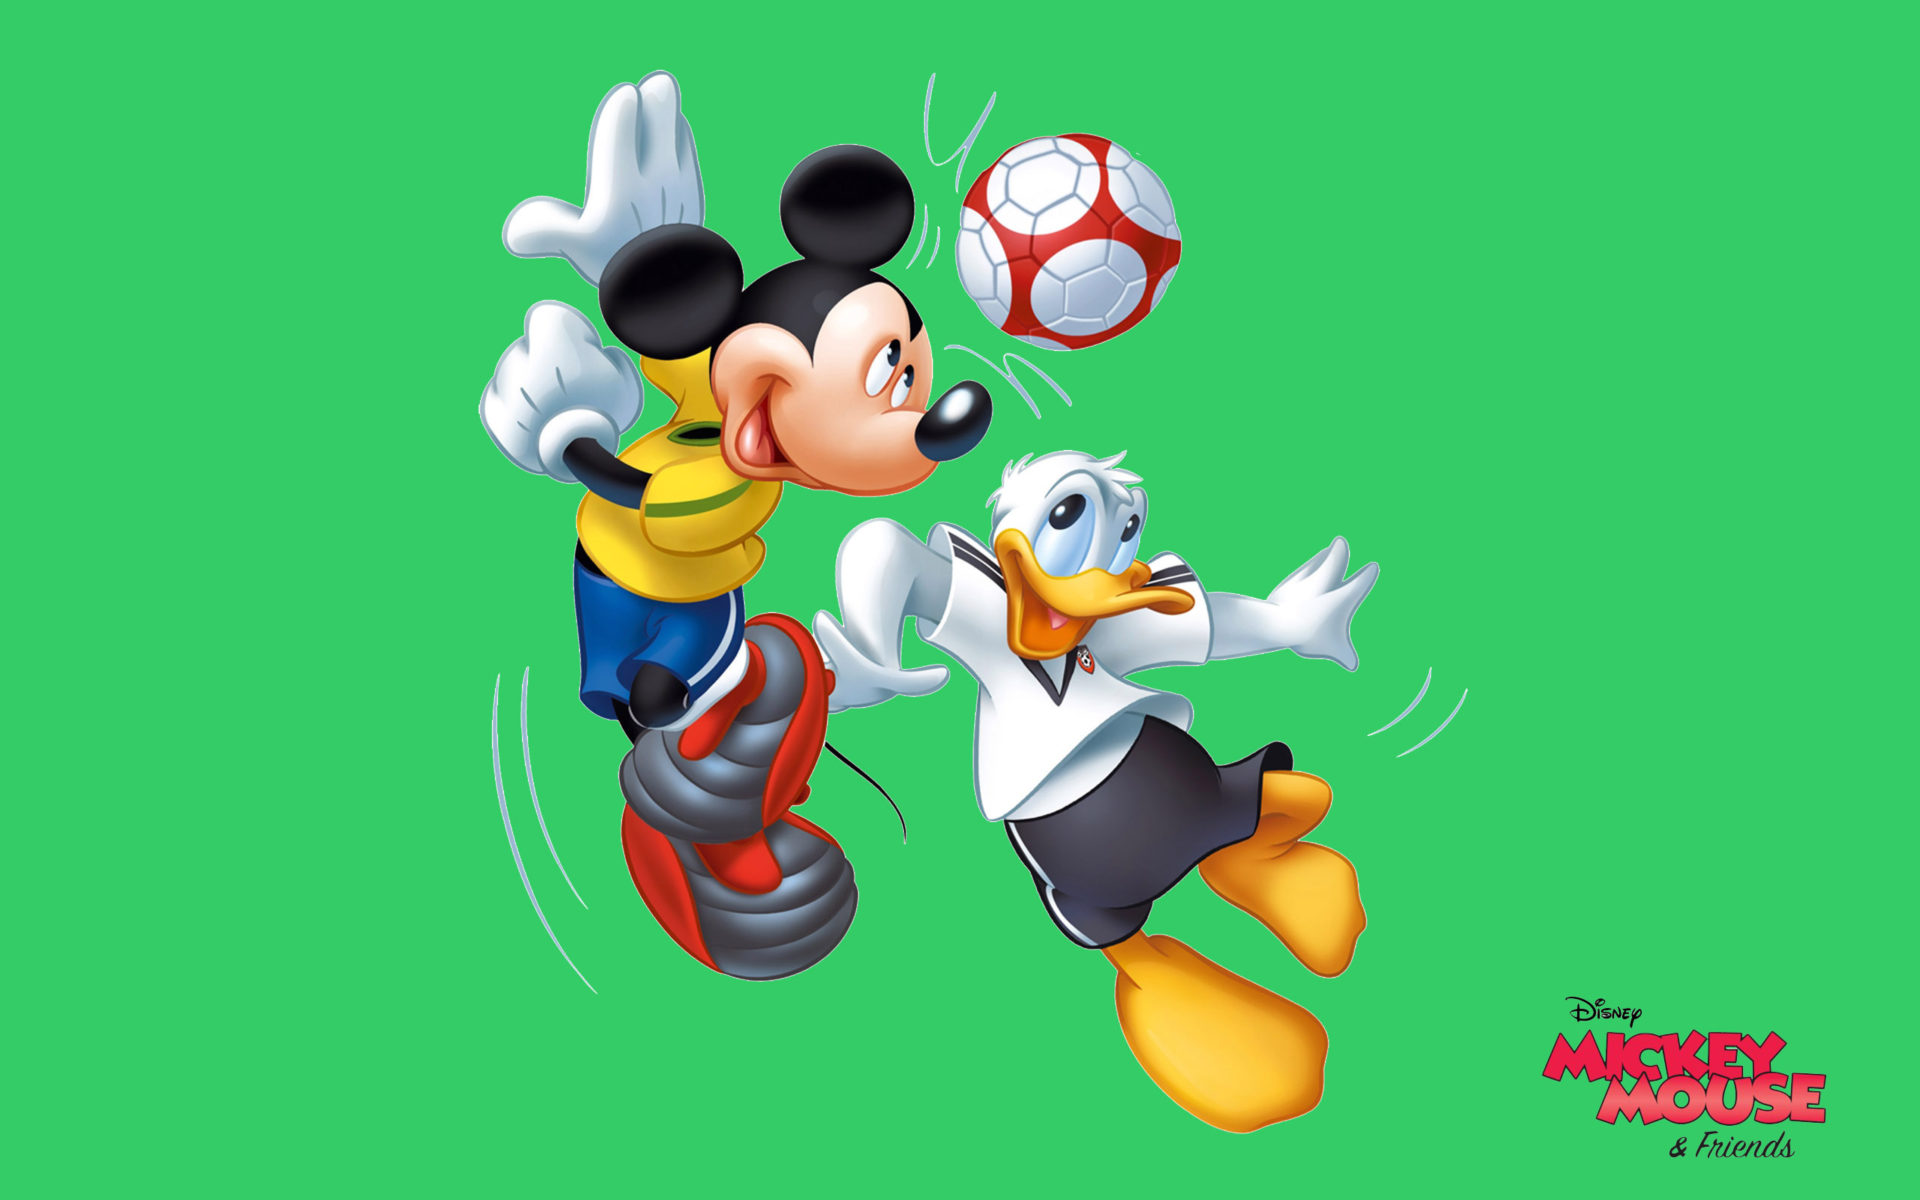 daisy duck and minnie mouse free cartoon wallpaper hd for desktop 2560x1600 wallpapers13 com